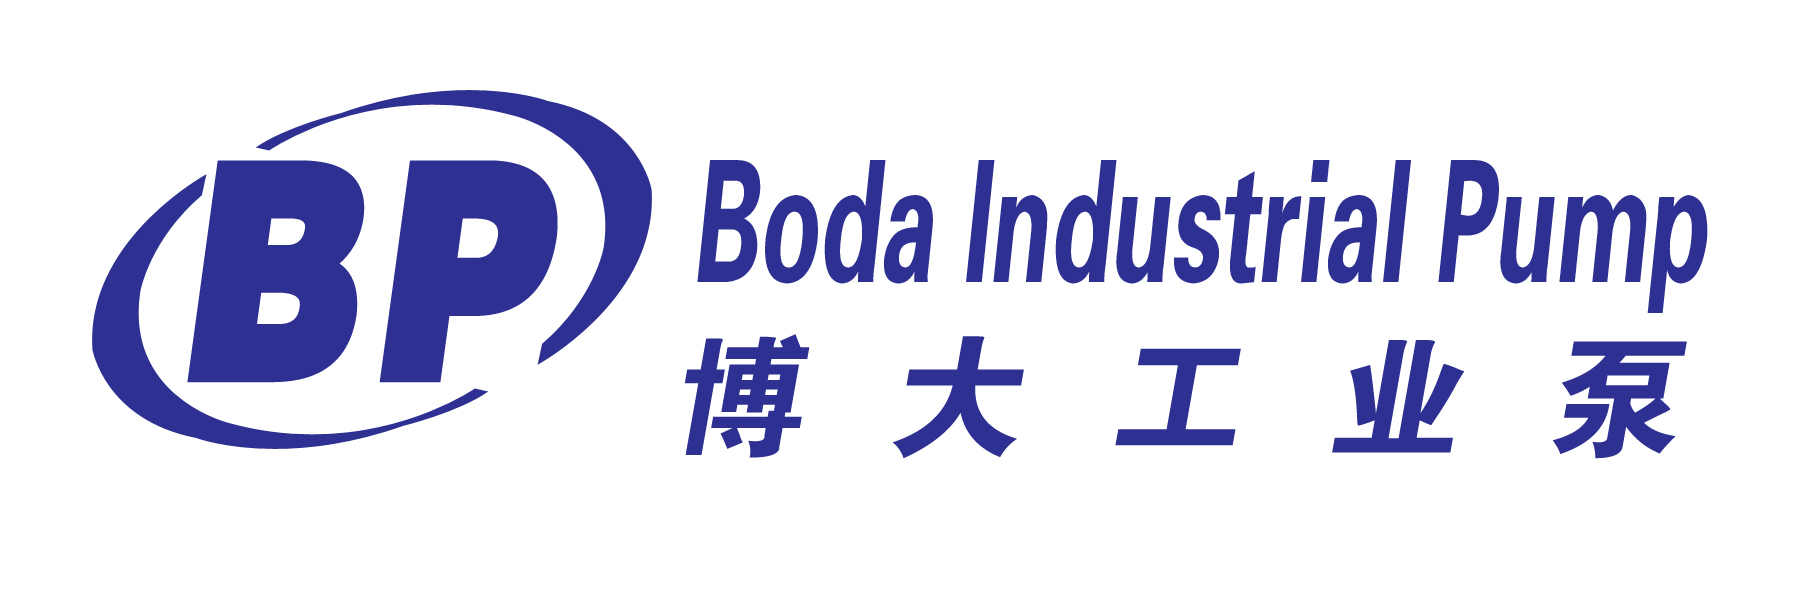 Shijiazhuang Boda Industrial Pump Co., Ltd.